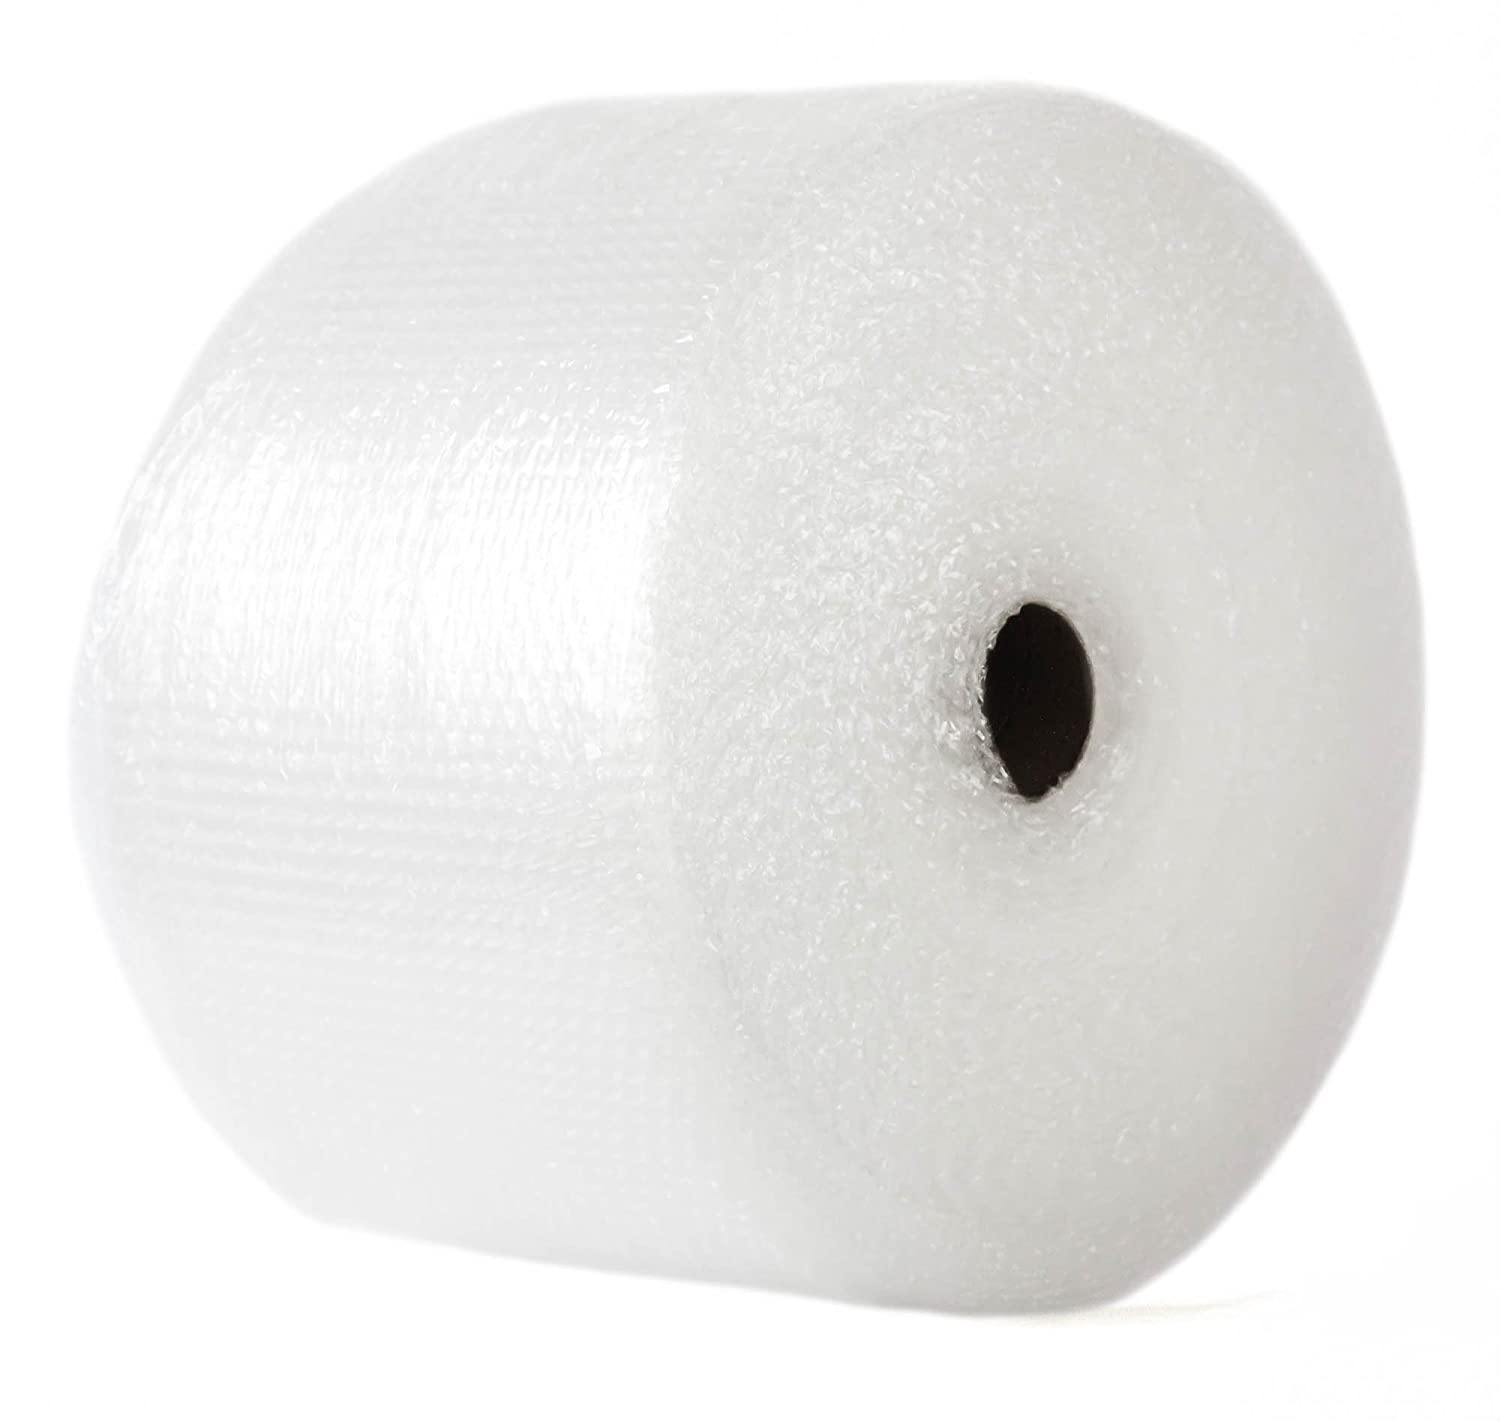 Small 3/16 Inch Bubble Cushioning Wrap Slit 12 by 12 Perf 175 Foot Roll Lightweight Protective Packaging Material in Rolls/Perforated Sheets for Moving, Shipping, Padding and Packaging B2Bpikpak BBL-12x12